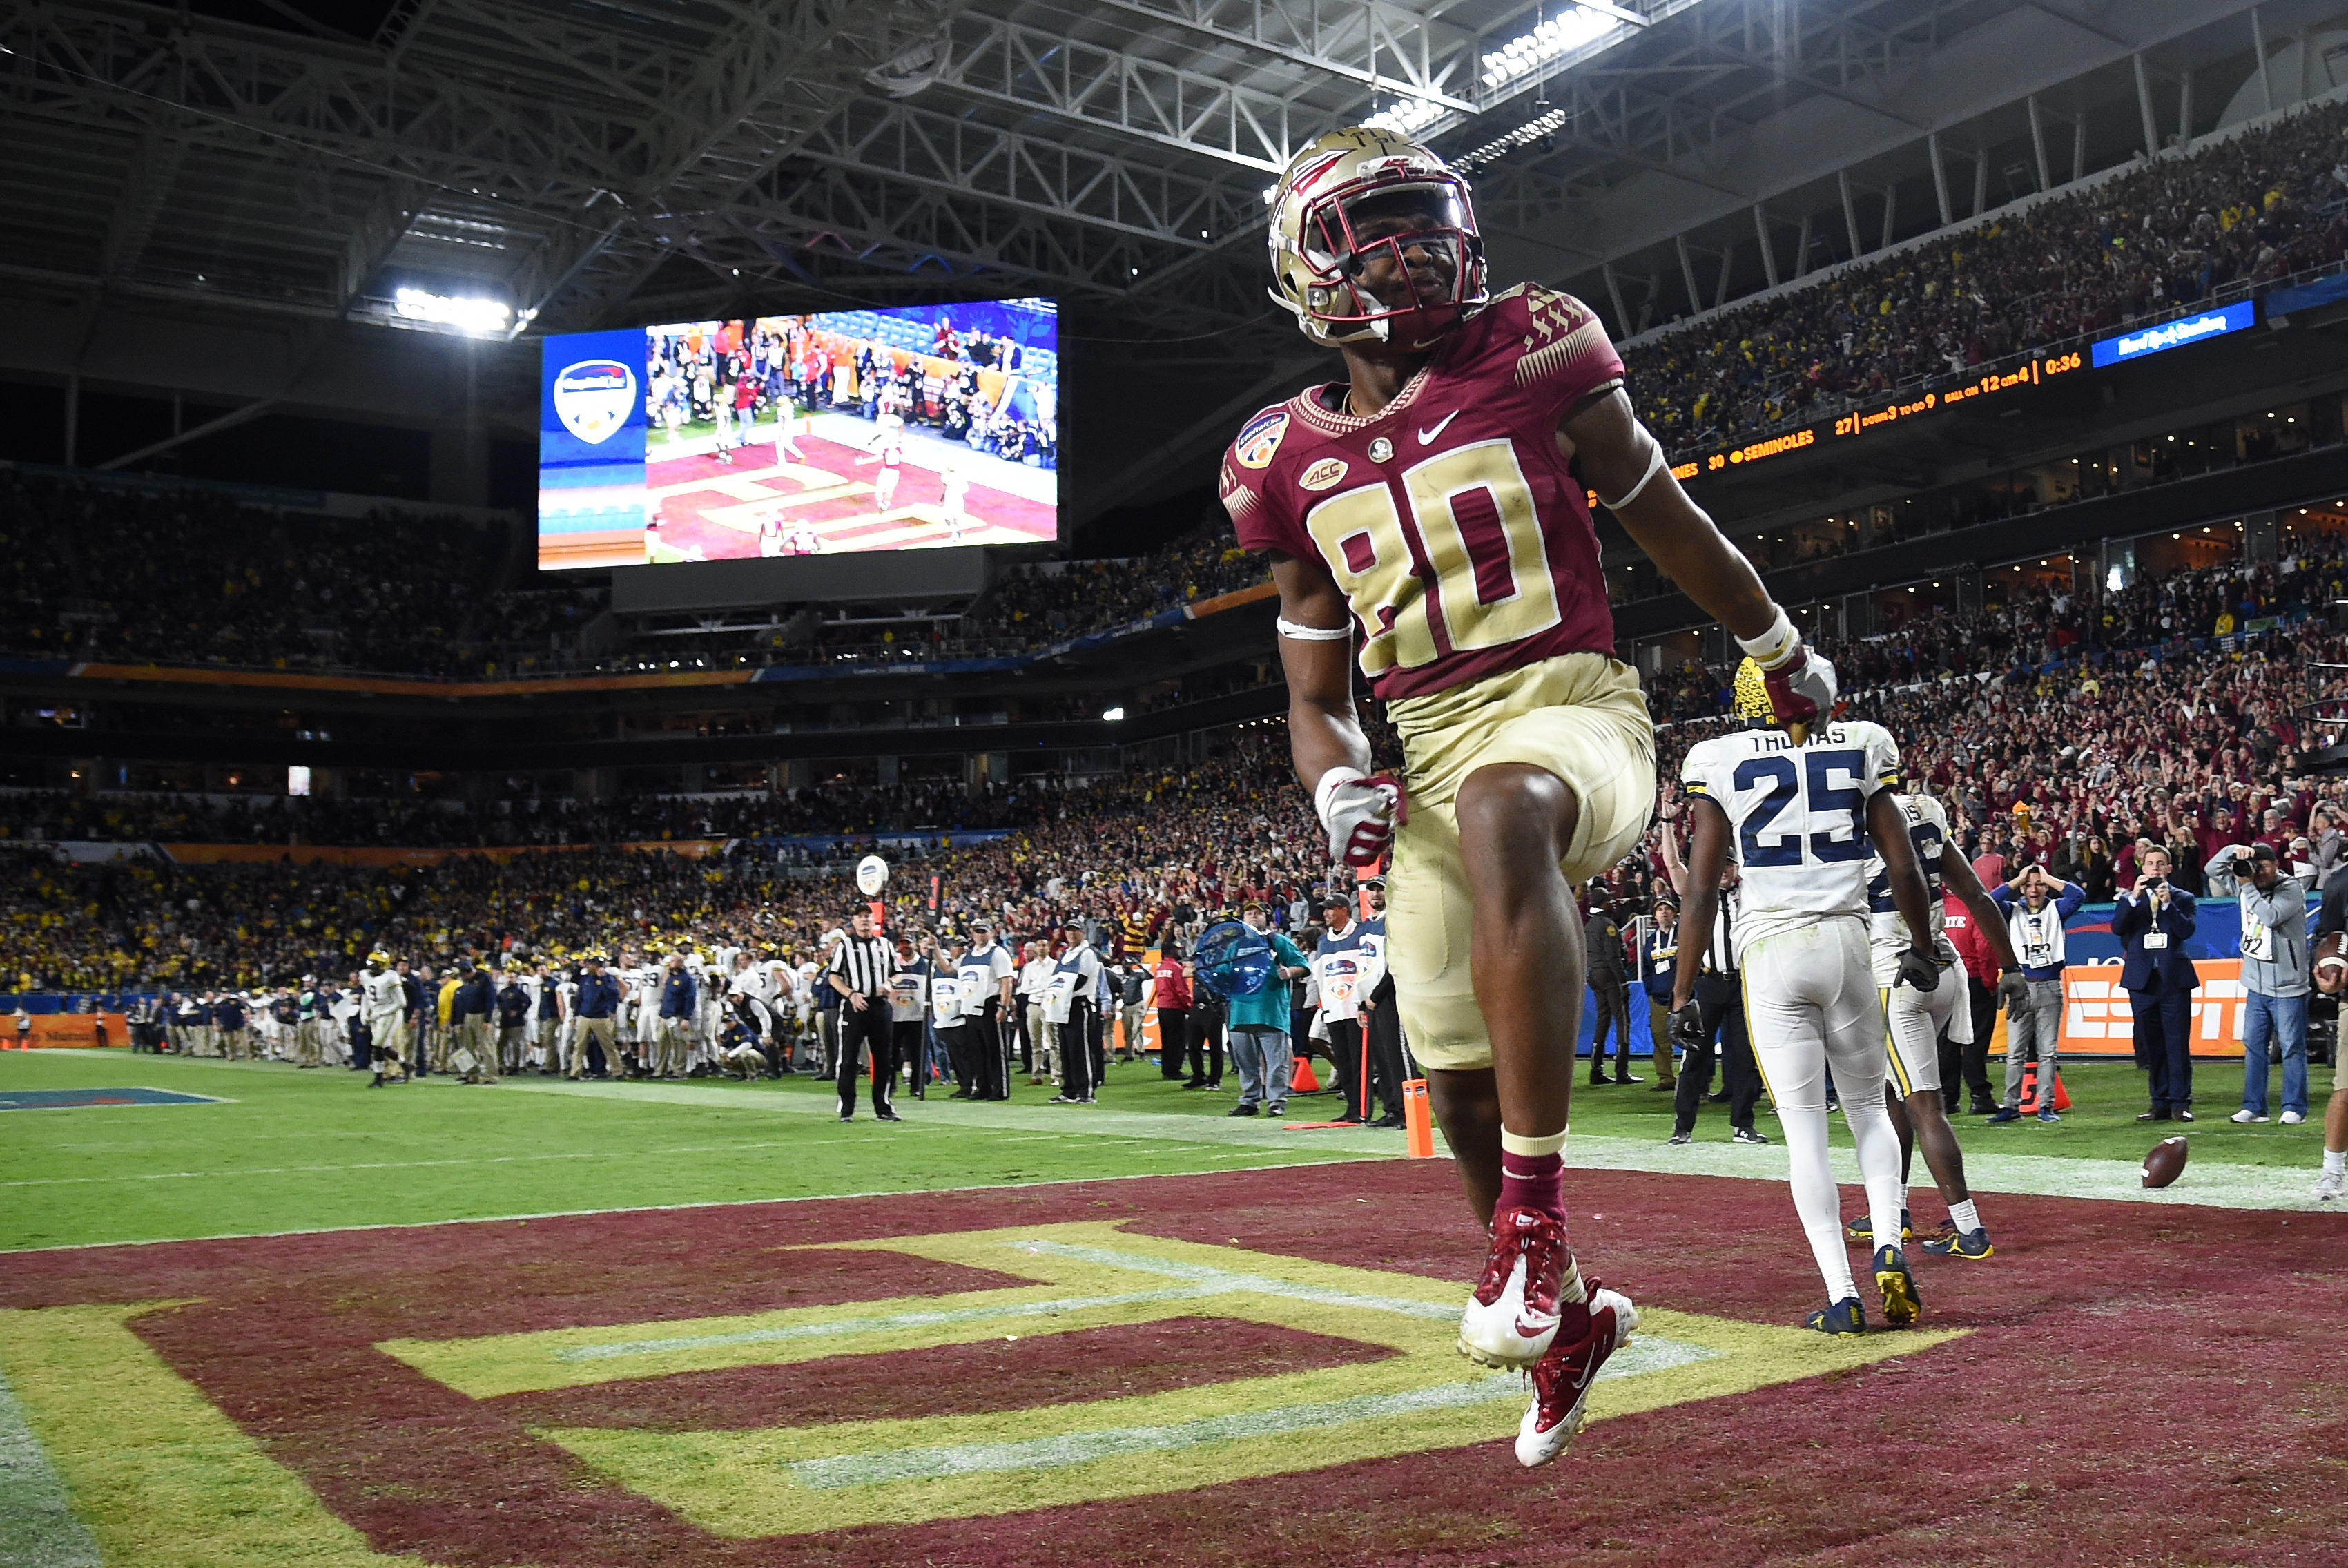 Dec 30 2016 Miami Gardens Fl Usa Florida State Seminoles Wide Receiver Nyqwan Murray 80 Reacts After Making A Touchdown In Front Of Michigan